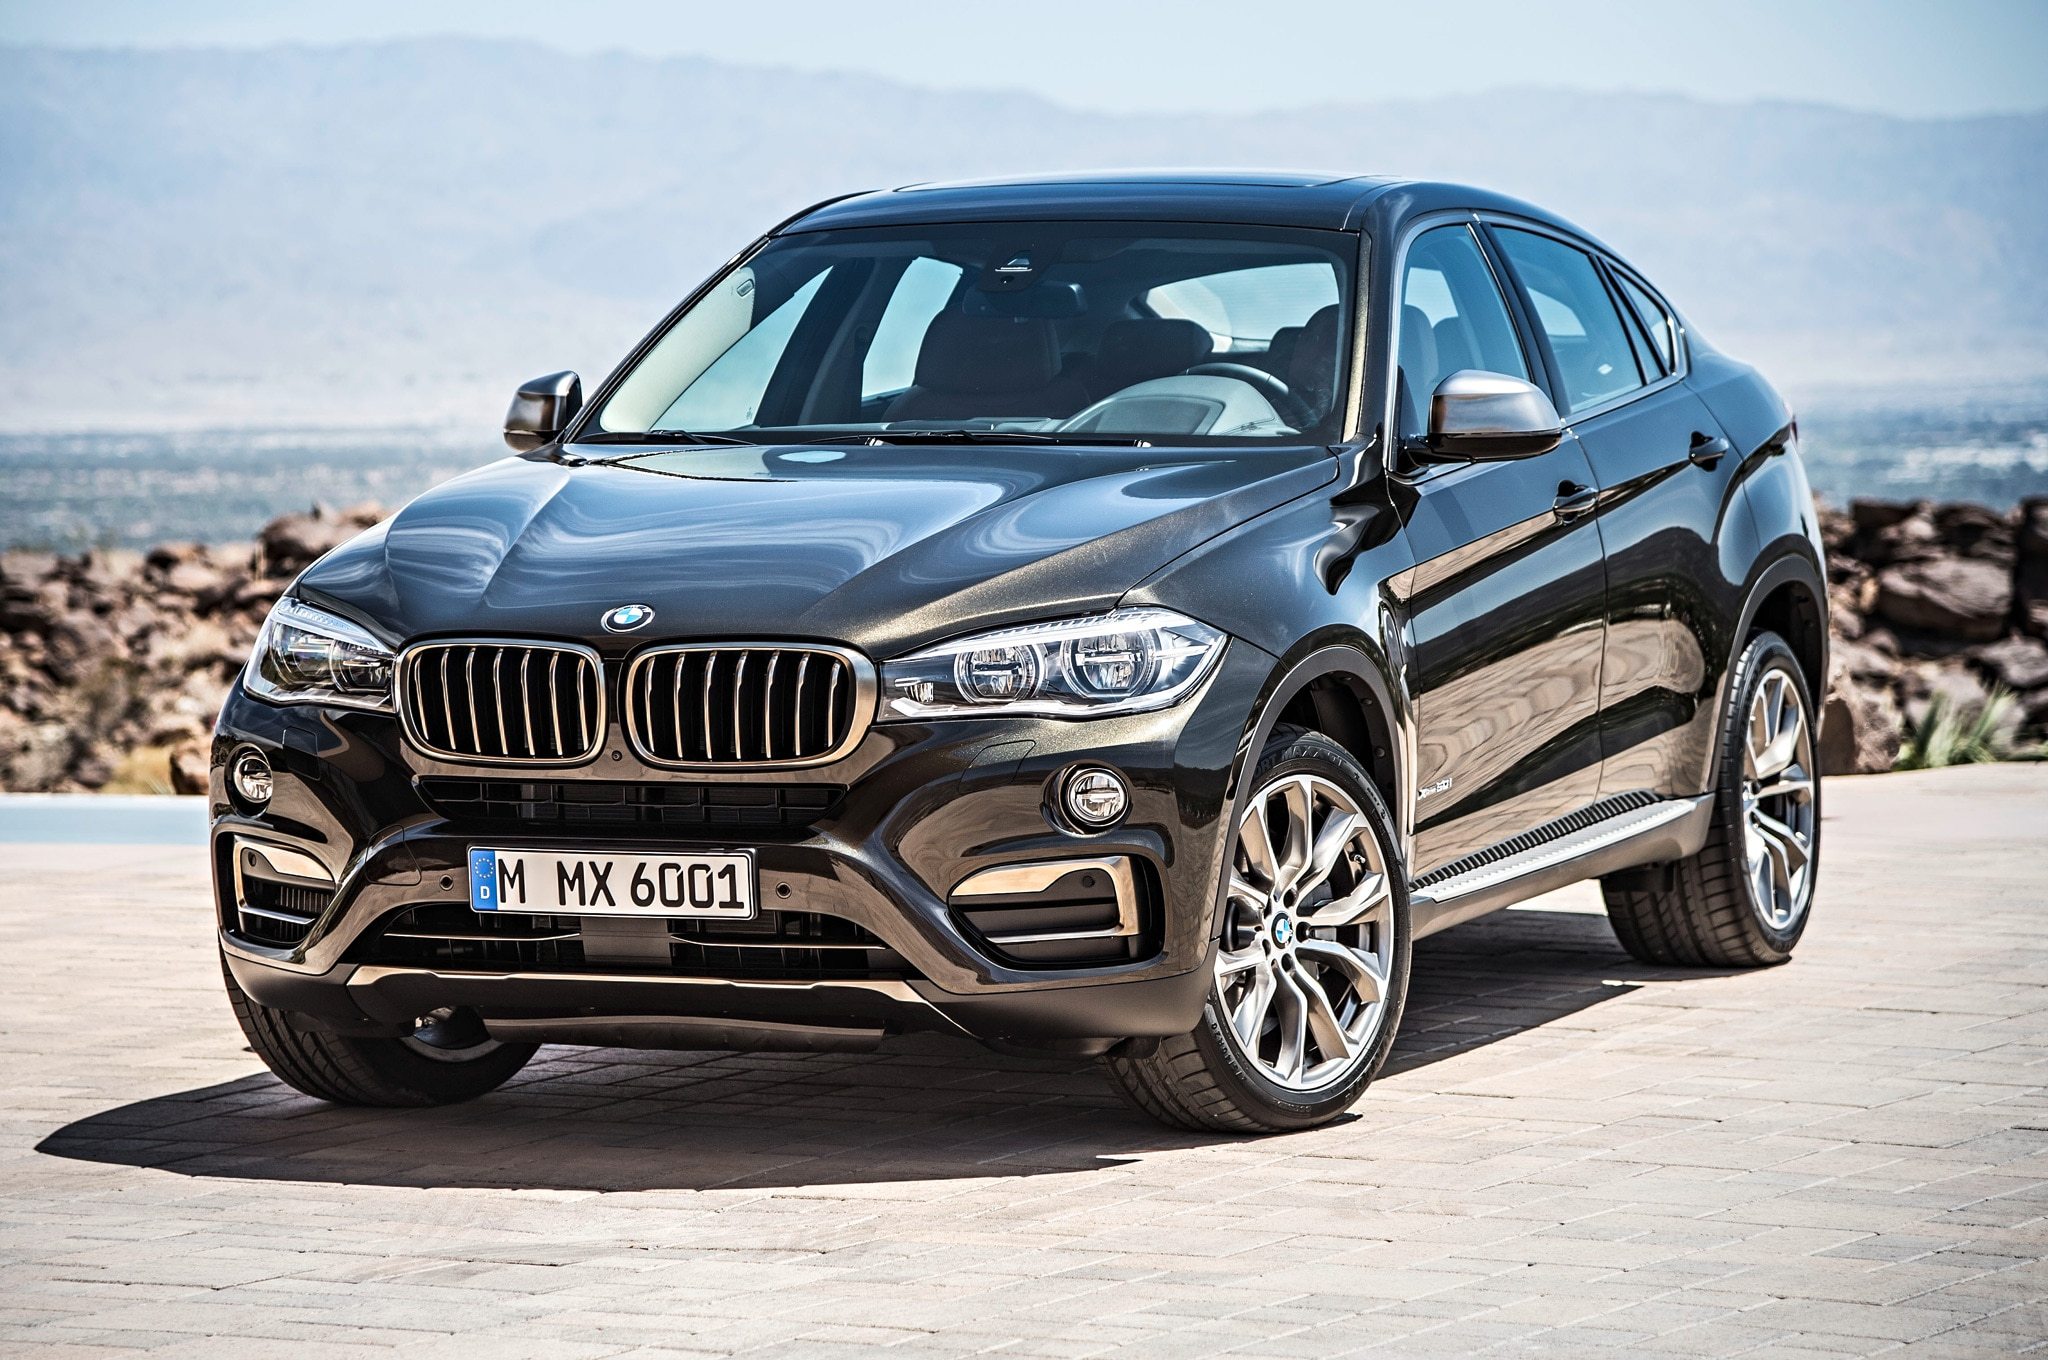 2015 BMW X6 Updated, Adds Rear Wheel Drive Model